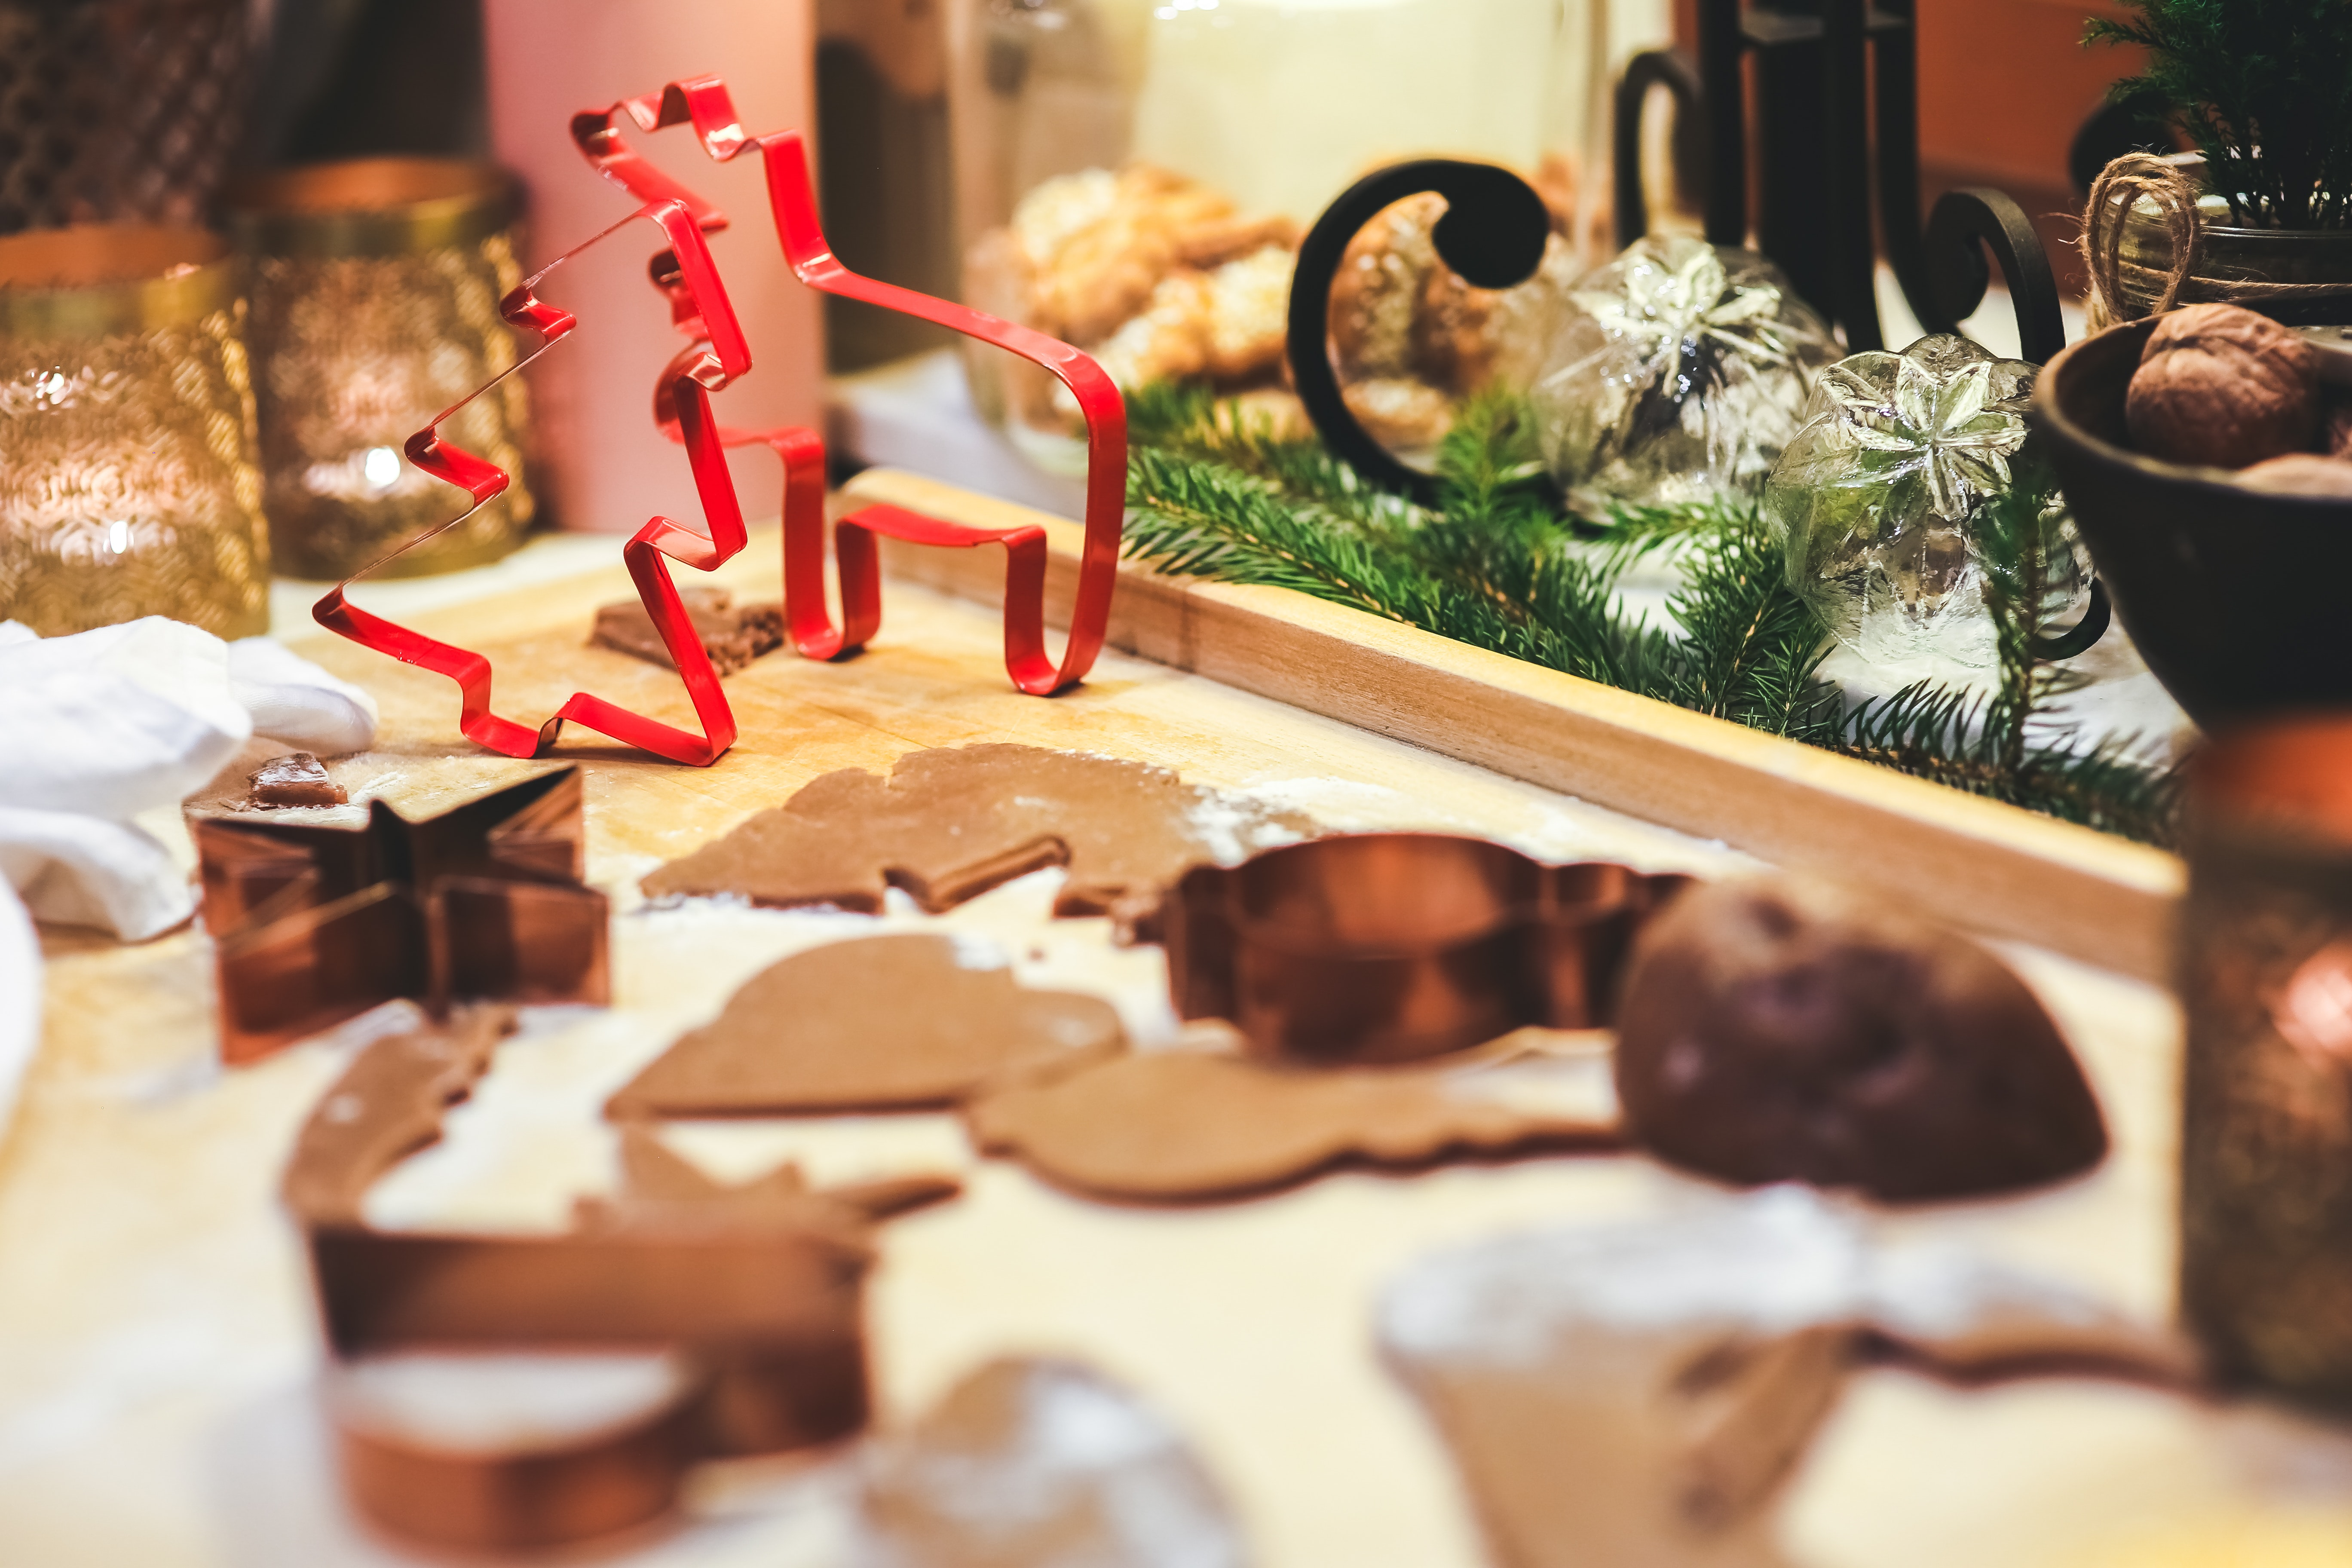 Making Gingerbread Cookies. Christmas Cookie Cutters., Milk, People, Interior design, Indulgence, HQ Photo